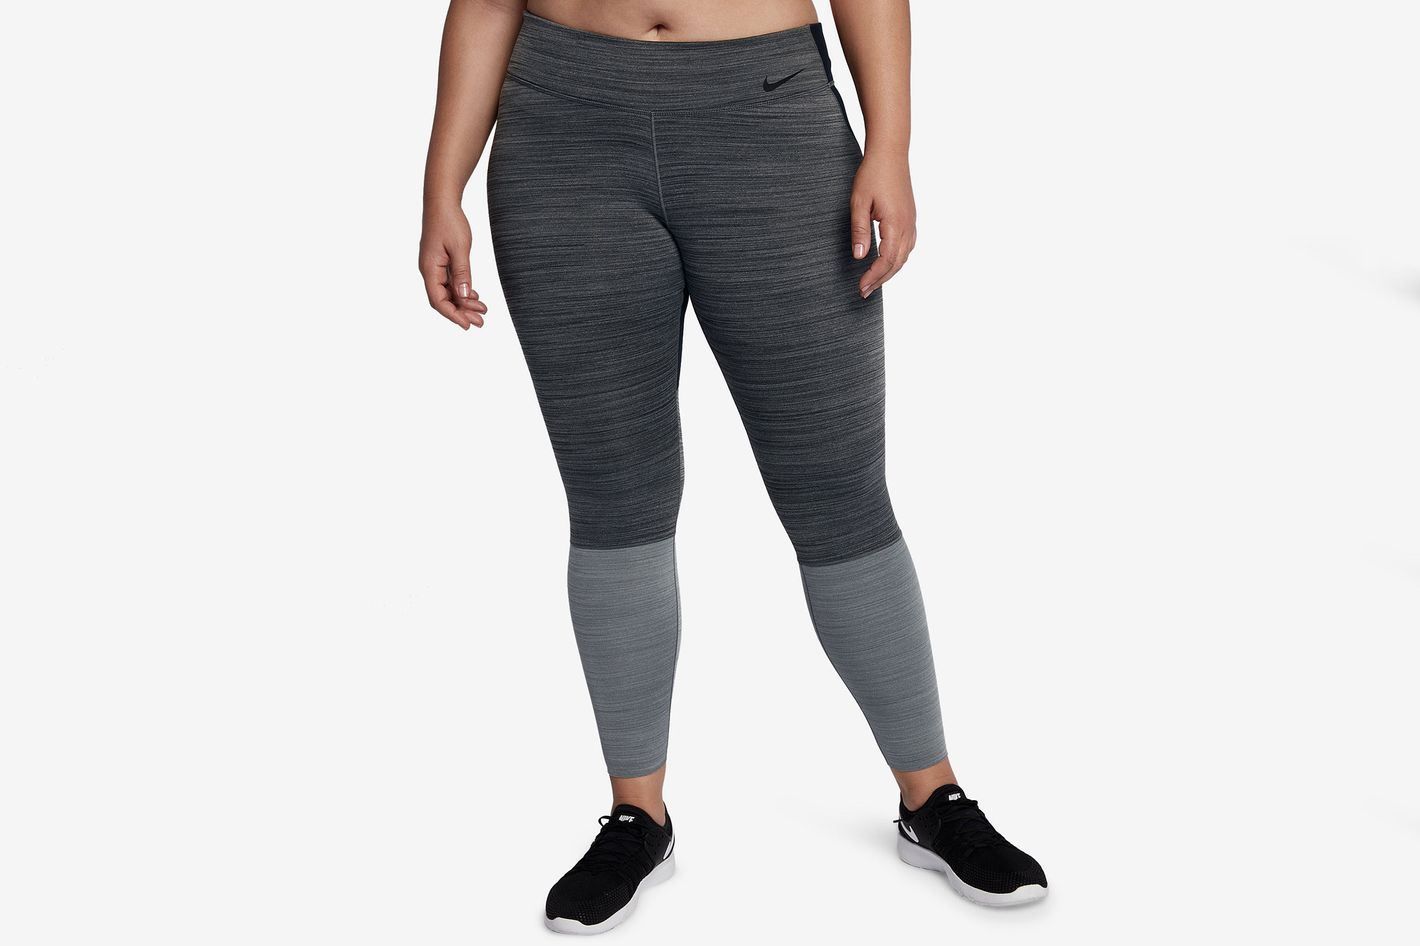 Nike Legendary Dri-FIT Leggings